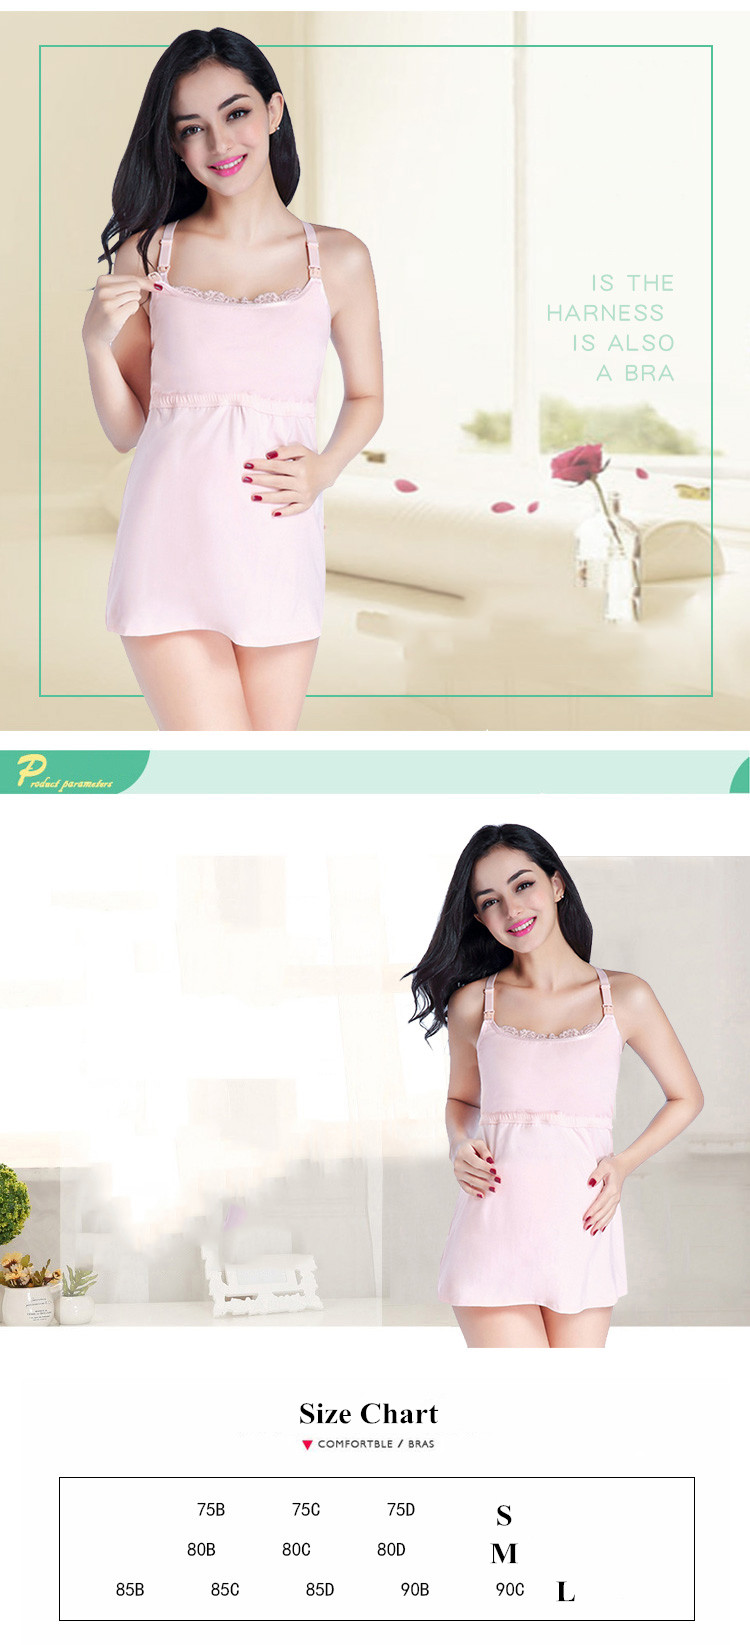 Cotton Lace Open Buttons Breastfeeding Bra Camilose Pregnant Sleepwear Postpartum Tank top